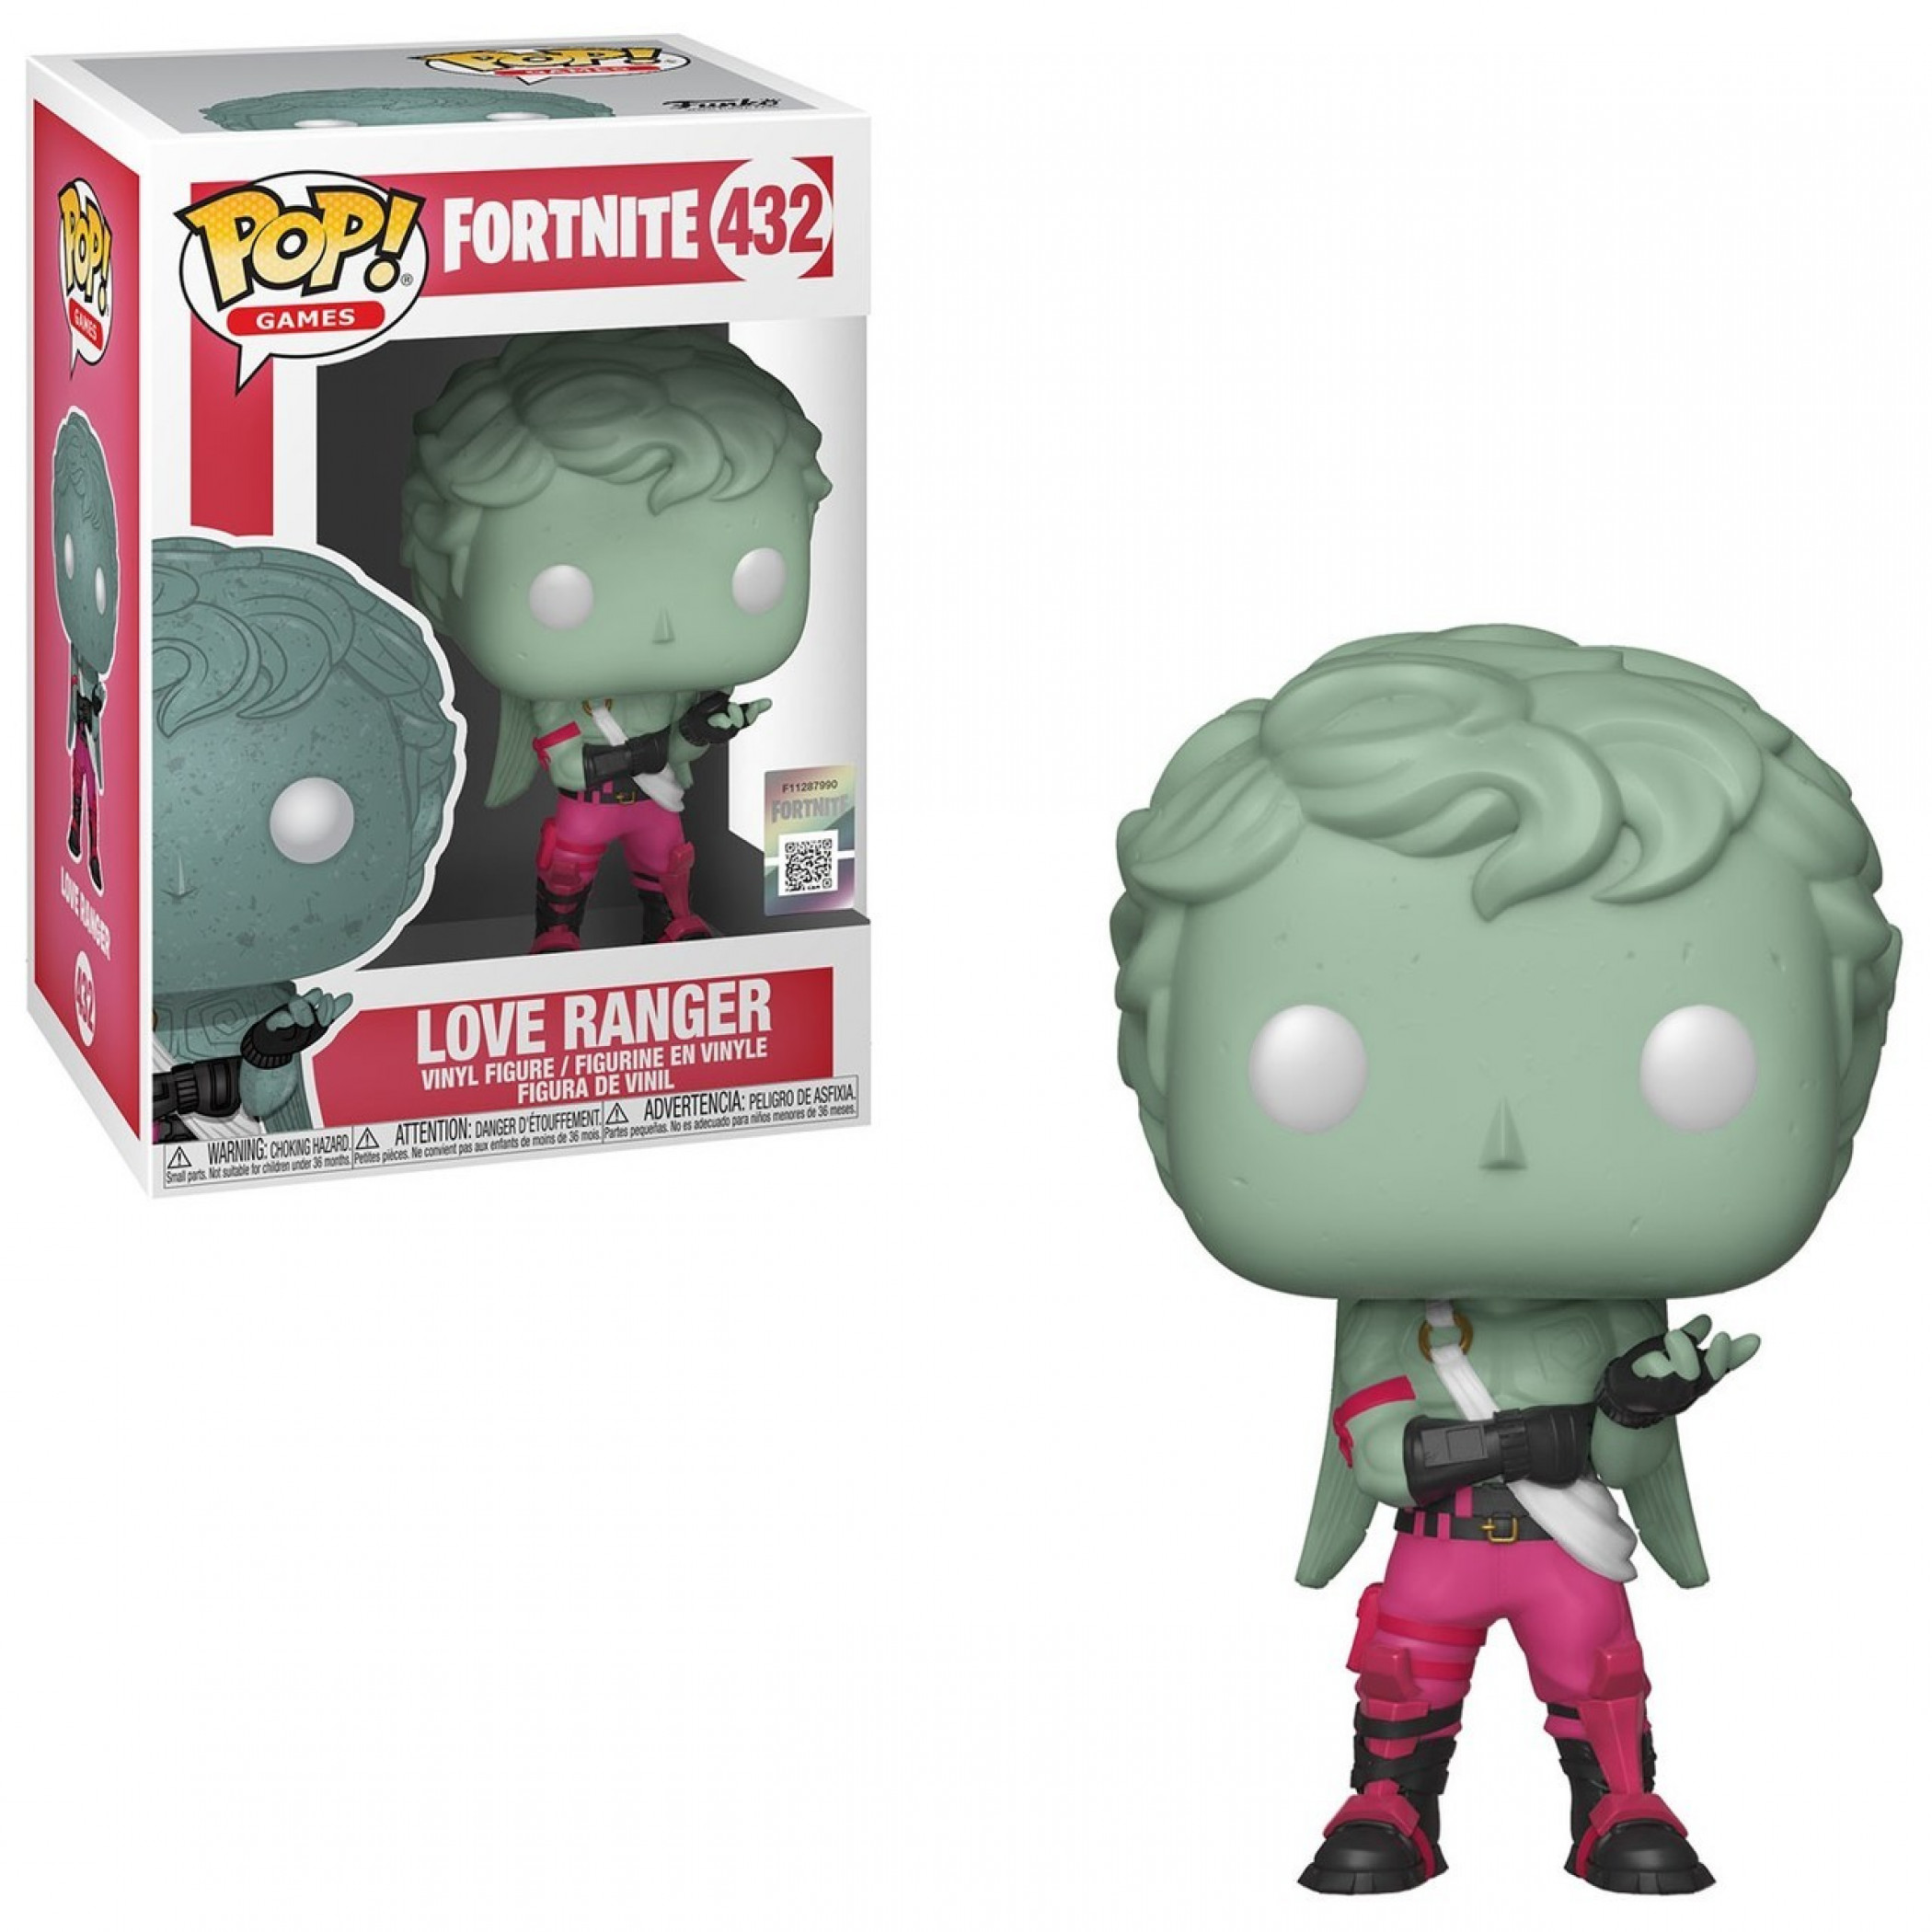 Pop! Games: Fortnite - Love Ranger Vinyl Figure